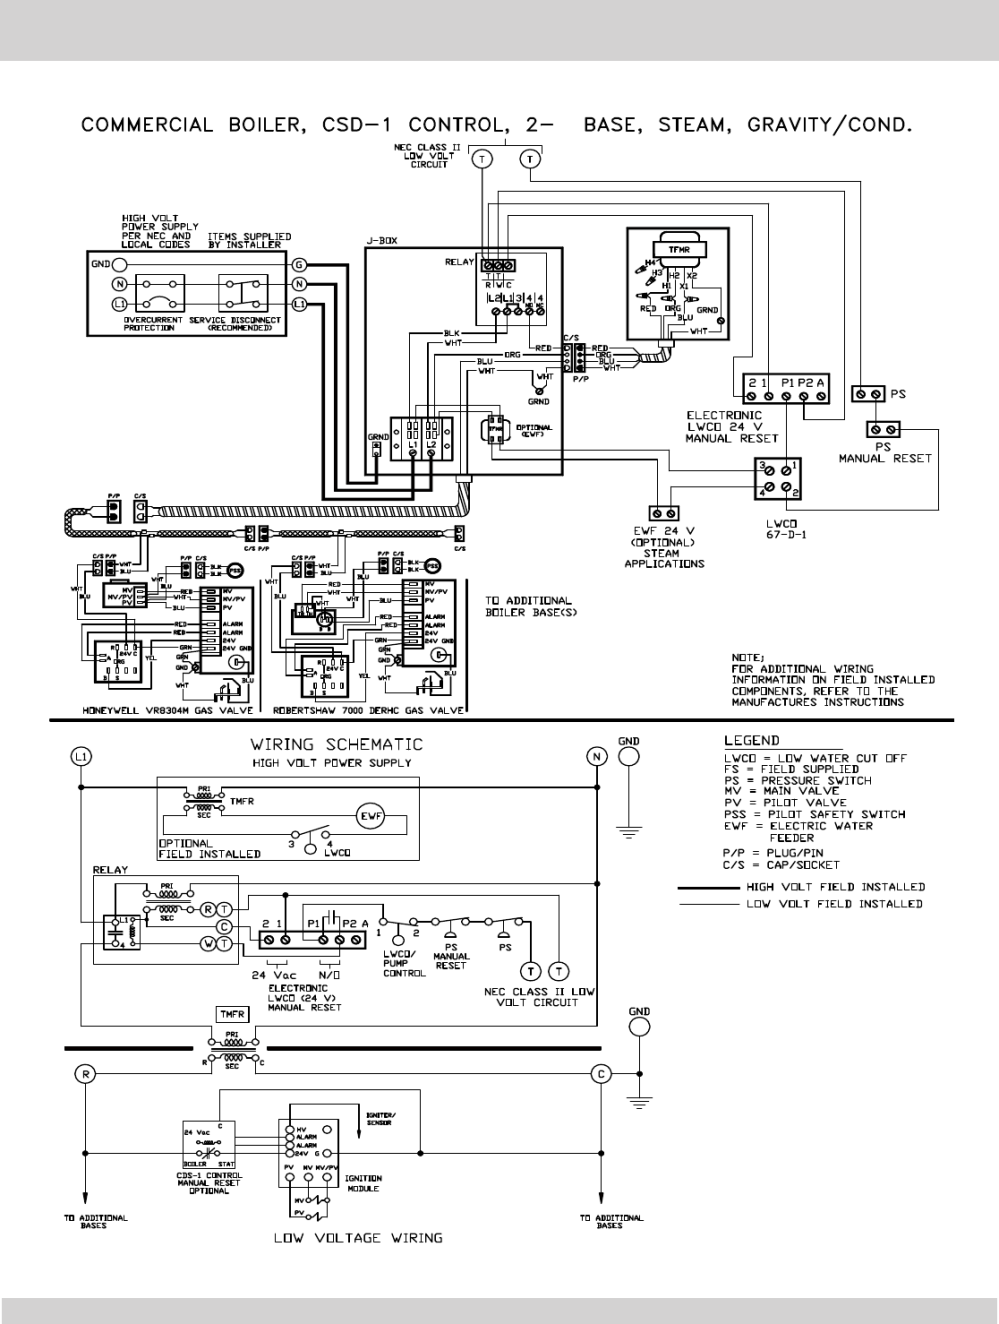 medium resolution of 3 electrical wire diagrams csd 1 steam boilers